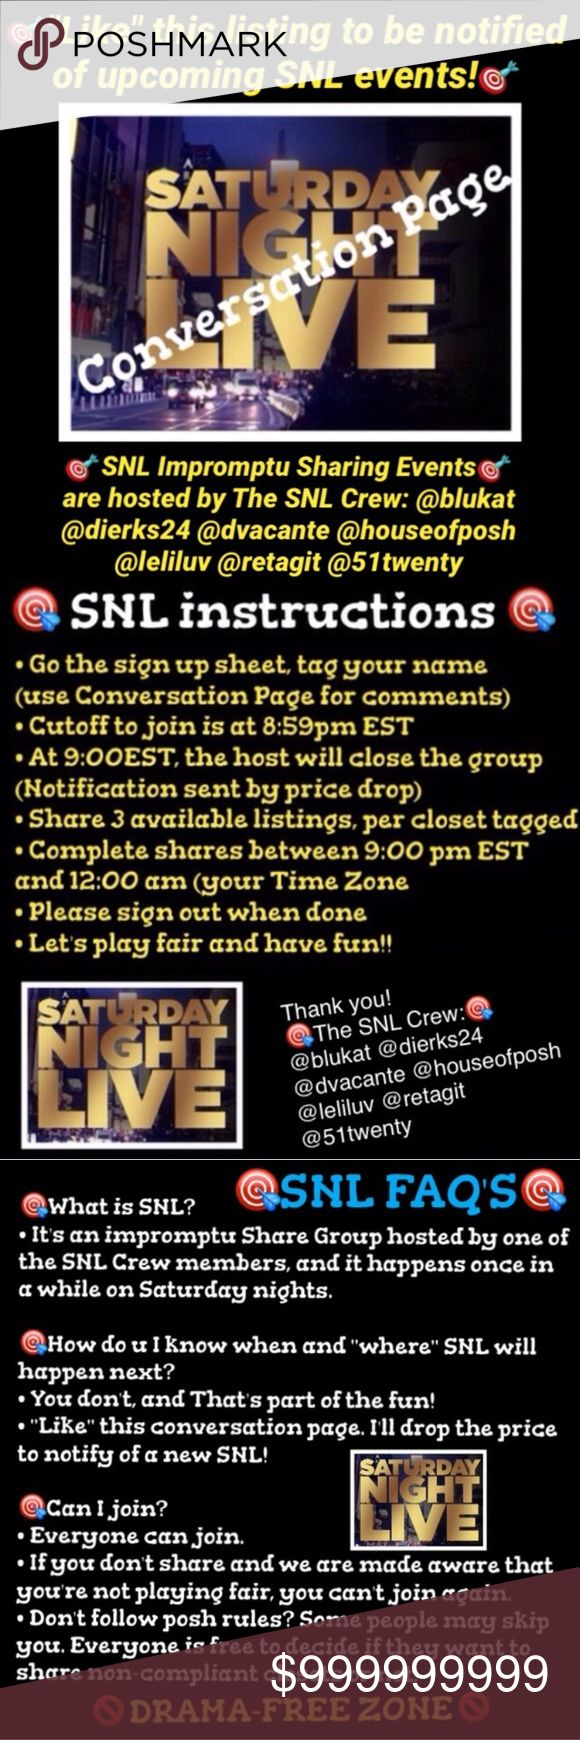 SNL Conversation Page Please TAG your name to be notified of upcoming SNL share nights 🎯 SNL is an impromptu share group happening on Saturday night in one of the host's closet 🎯 In which closet will it be? When will SNL be hosted again? Exactly! Finding out is all part of the fun! 🎯 Make sure to TAG your name and you can be informed! Other